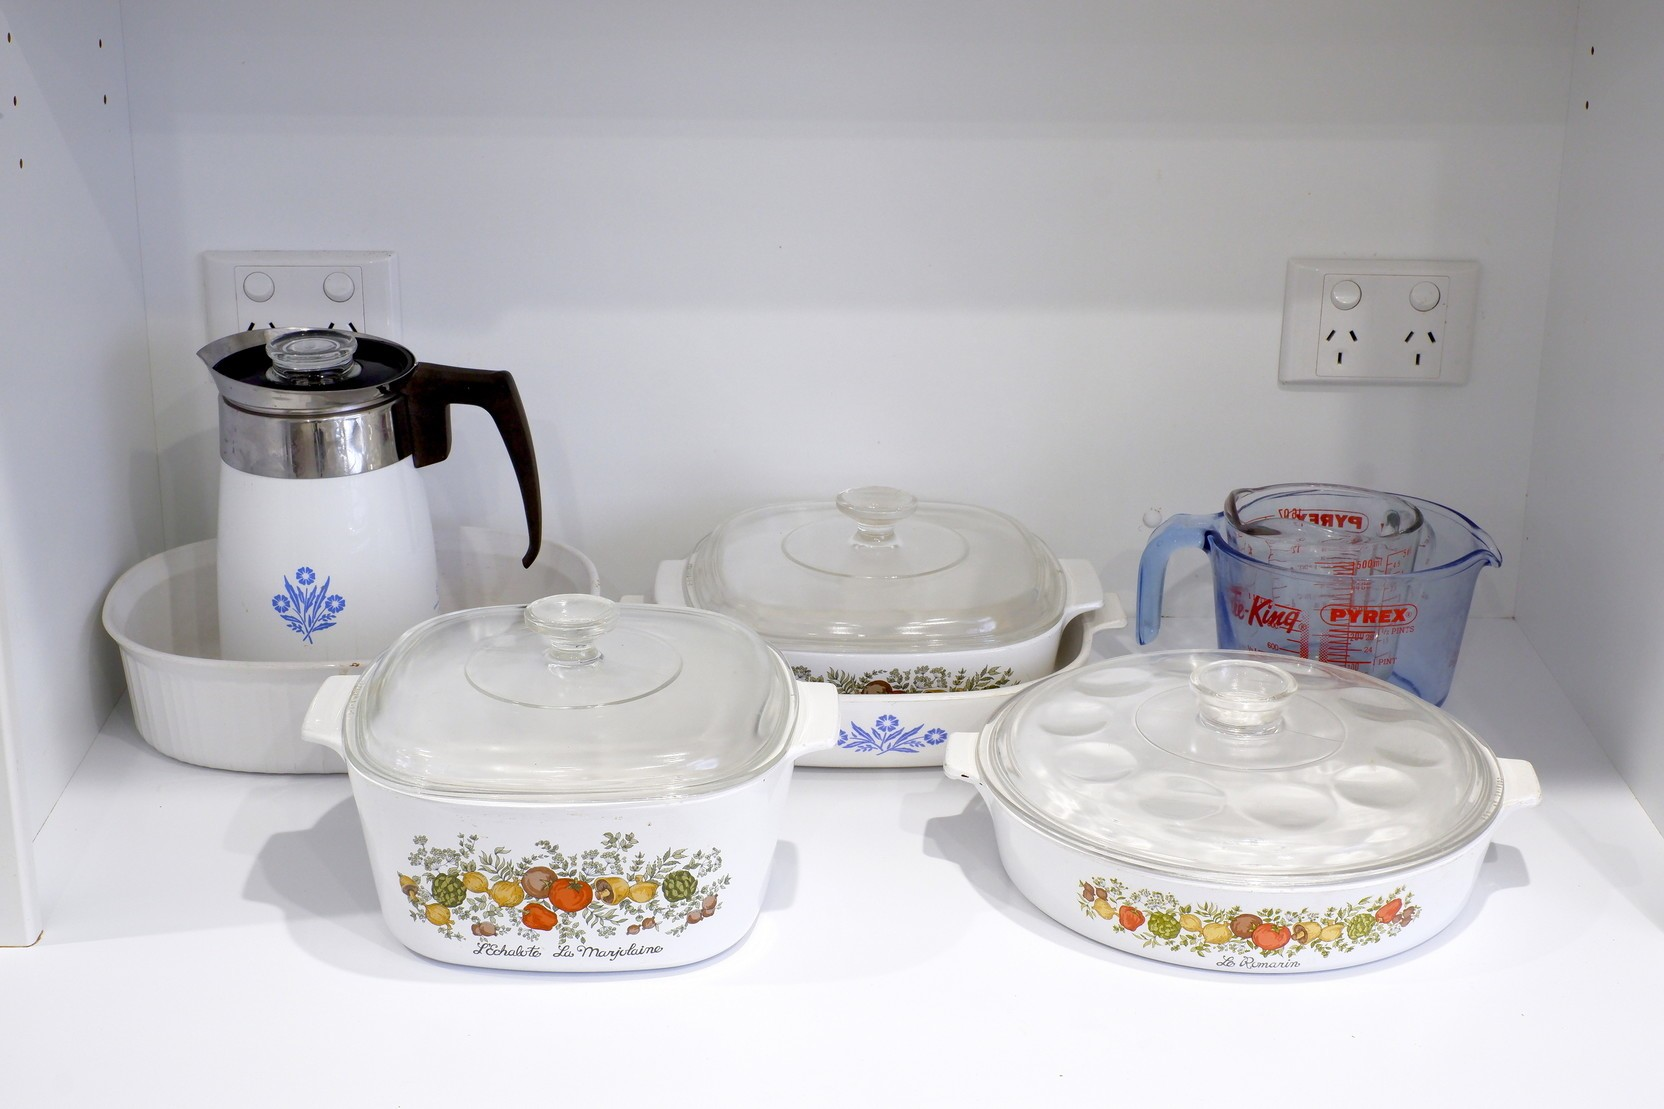 'Group of Pyrex and Corning Ware'